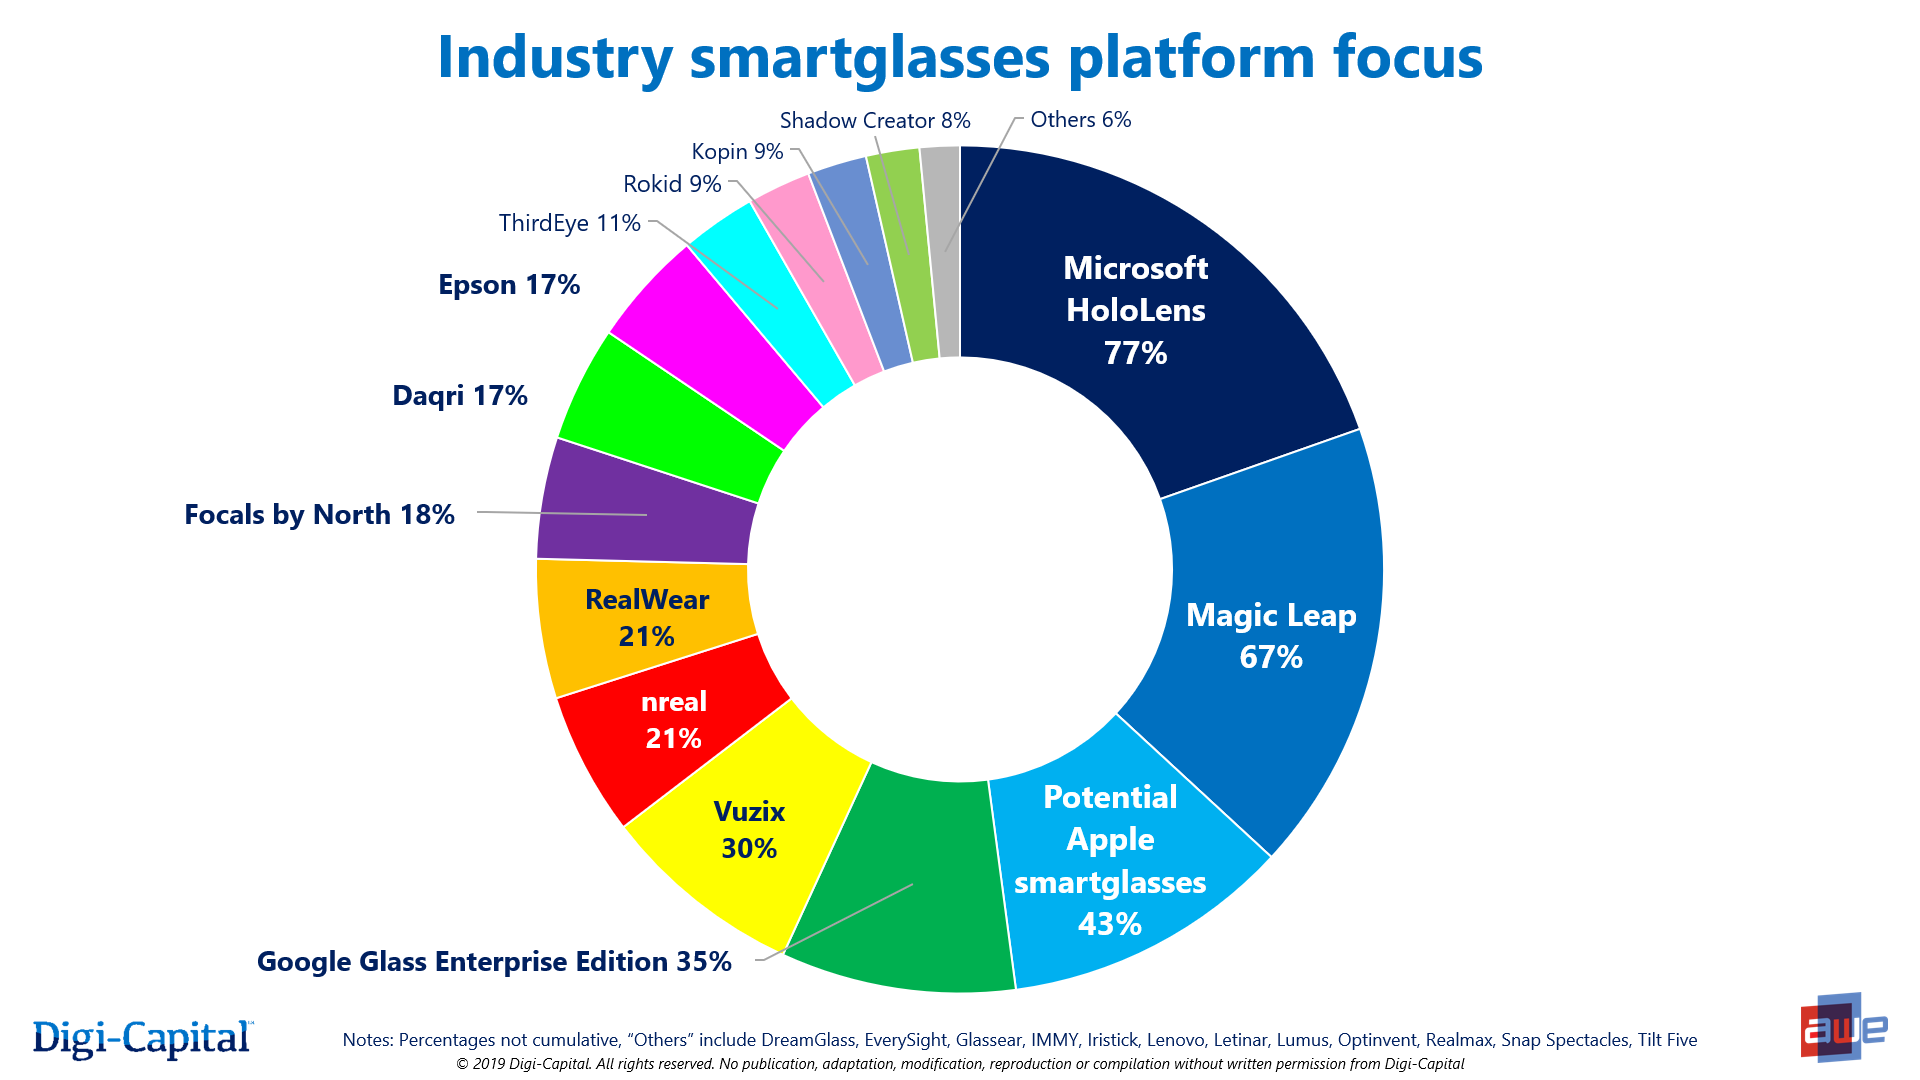 Apple already the No. 3 smart glasses player without a product, says survey